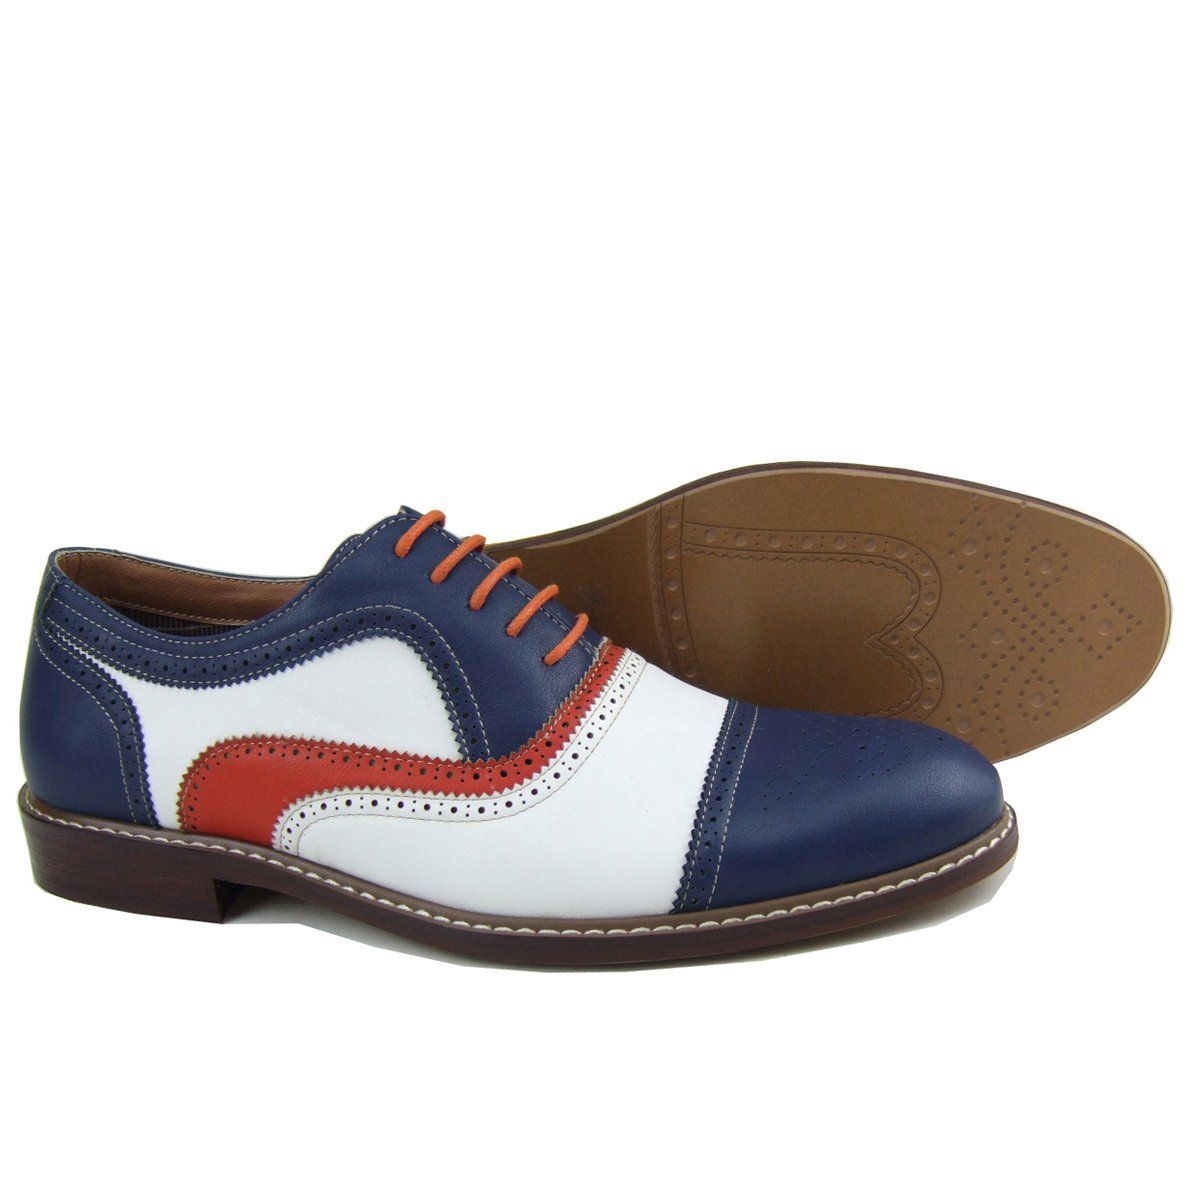 Ferro Aldo Men's Blue Red White Perforated Lace Up Dress Classic Oxford  Shoes